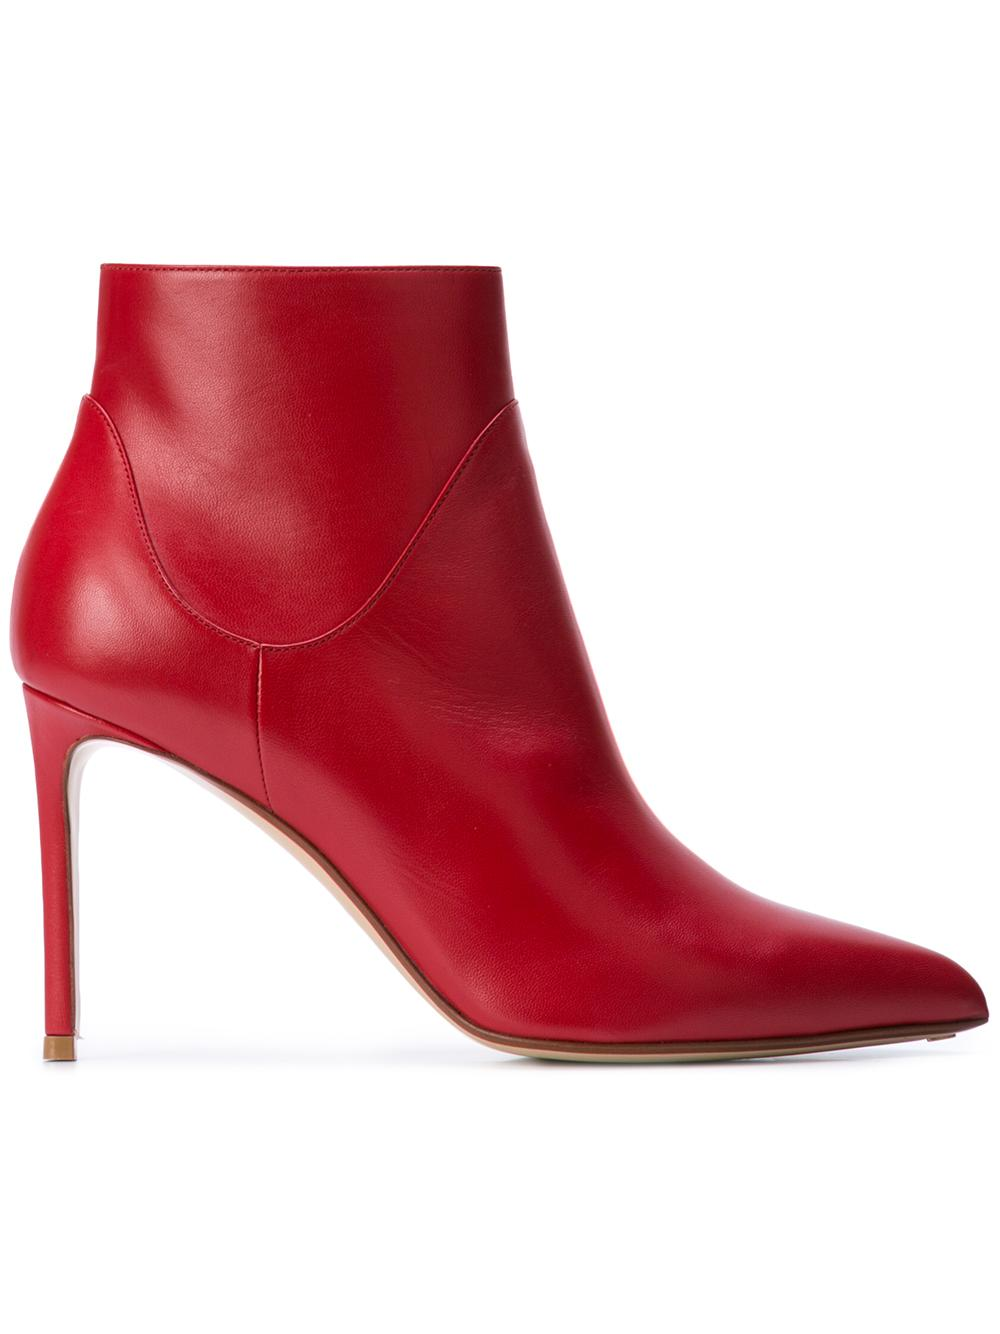 Nappa pointed Toe Bootie